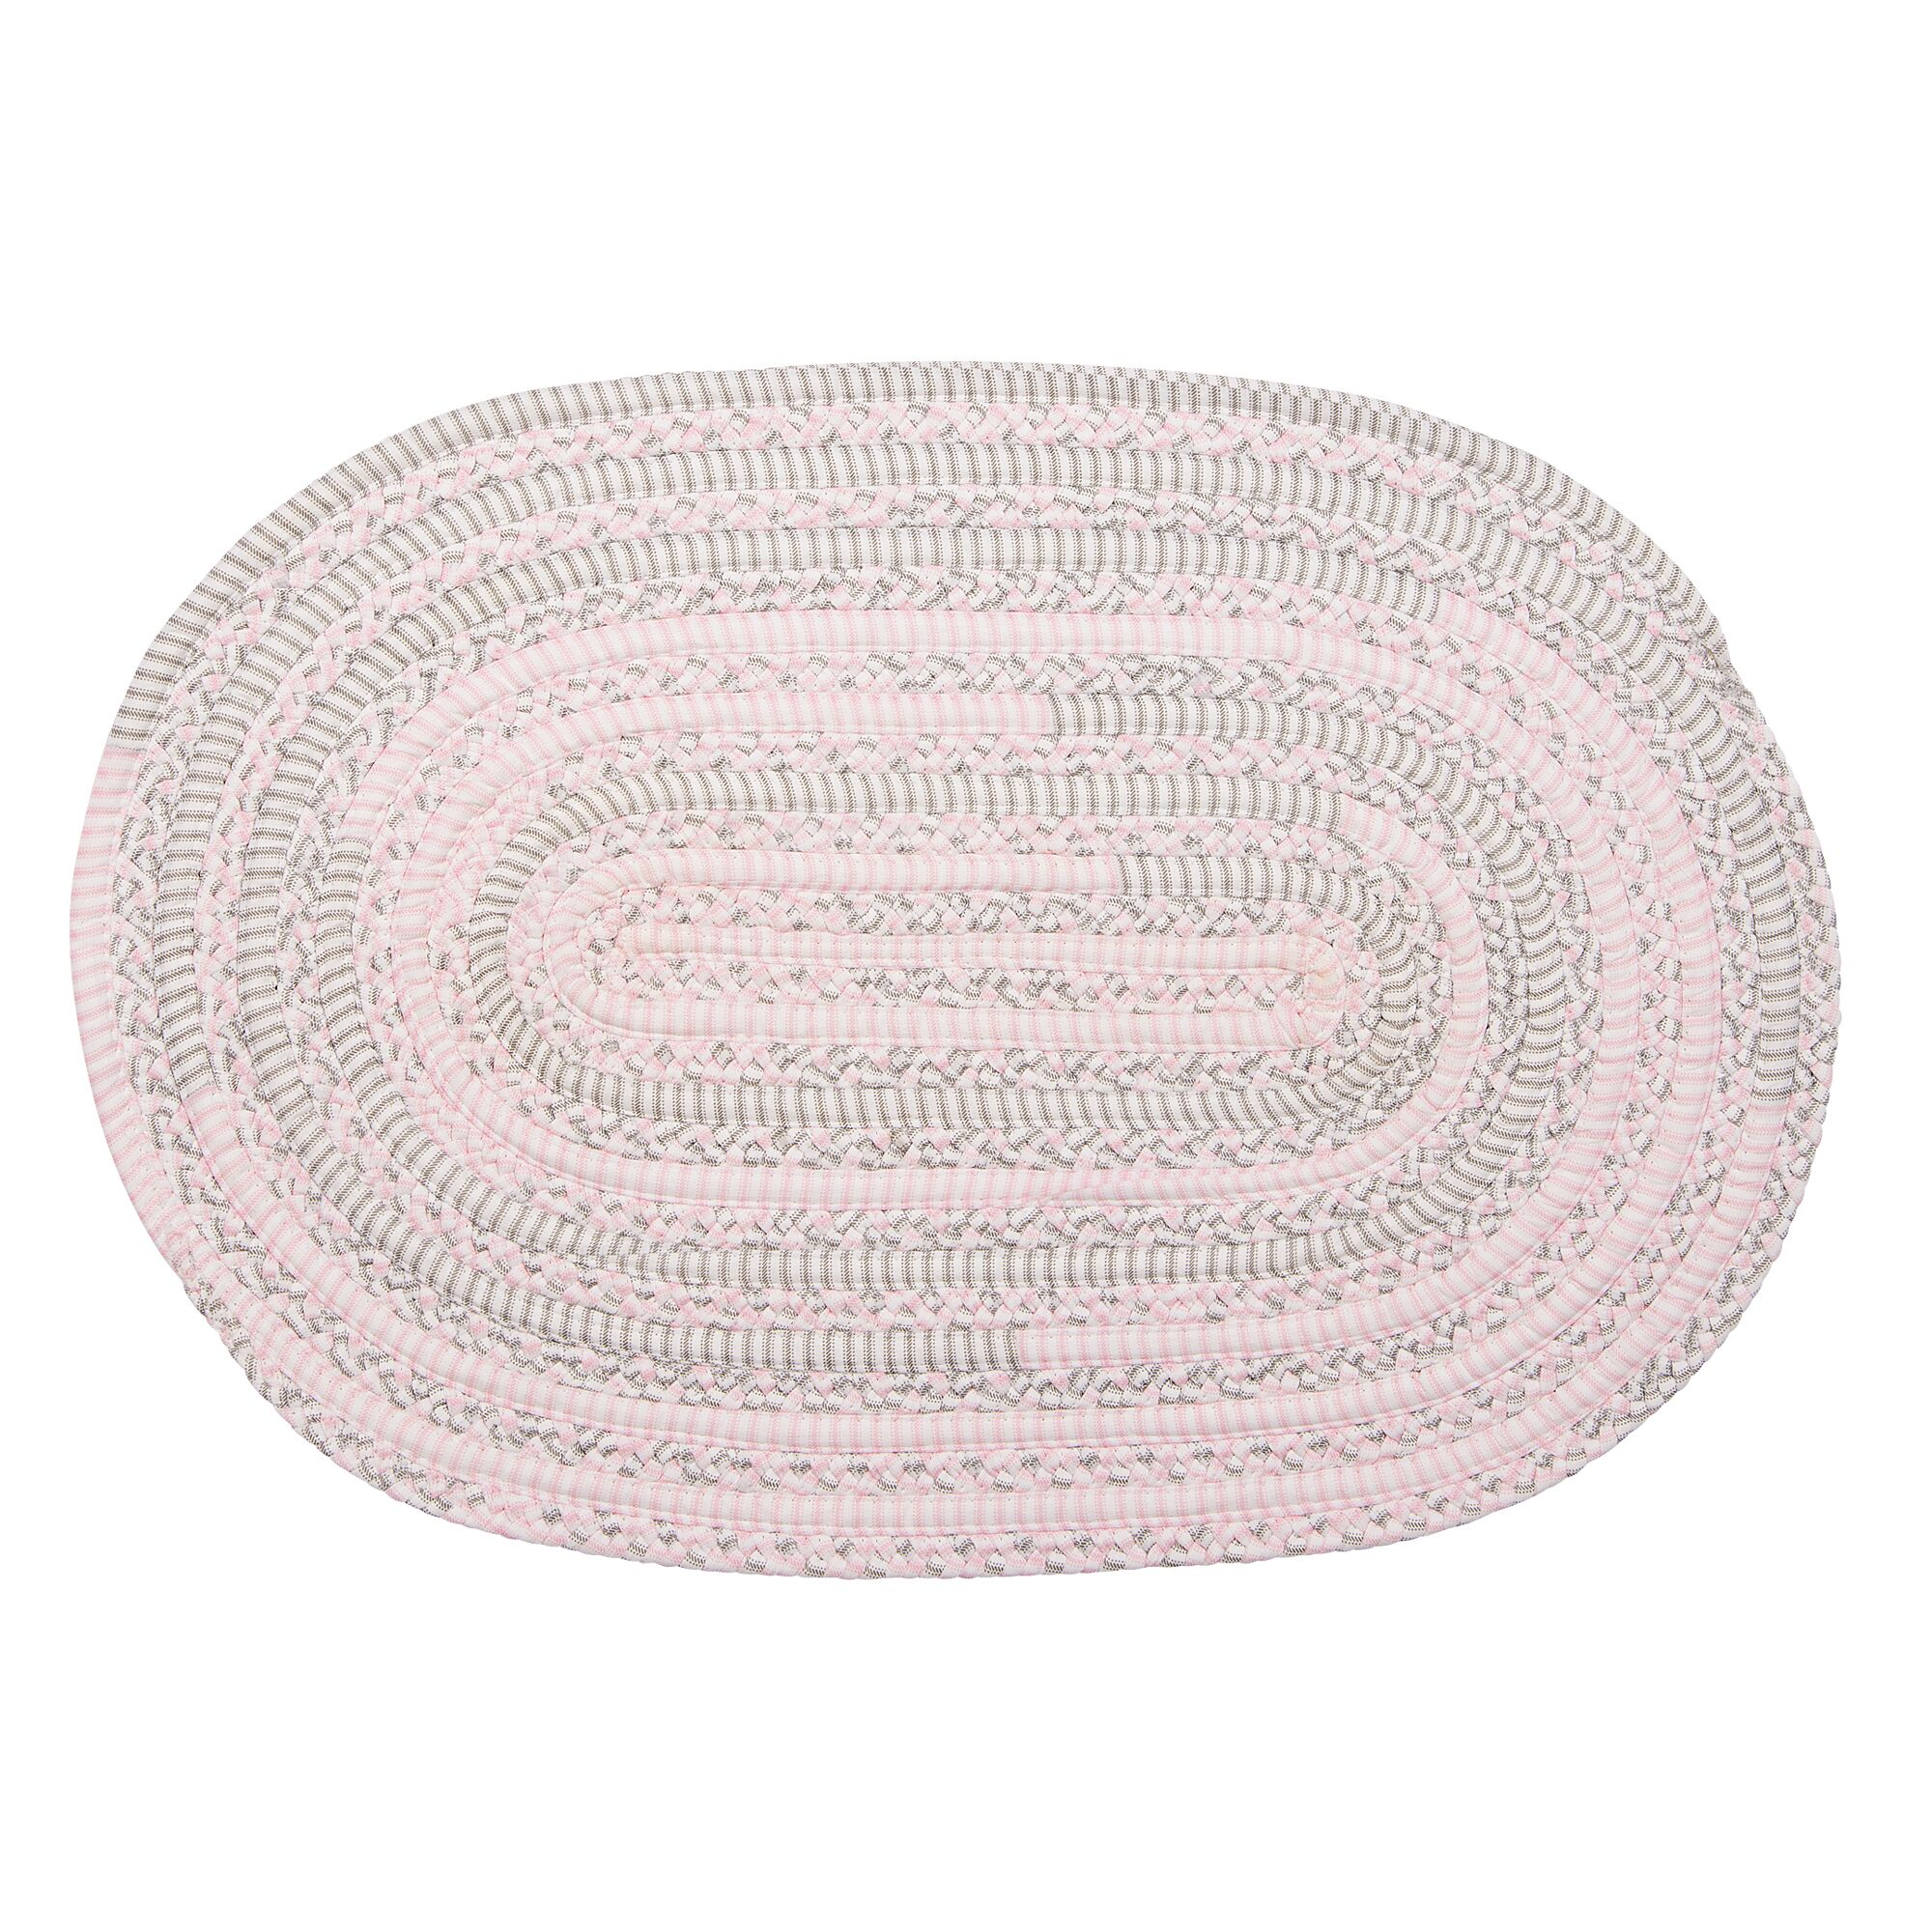 Banneker Hand-Braided Pink/Gray Area Rug Rug Size: Oval 2' x 4'